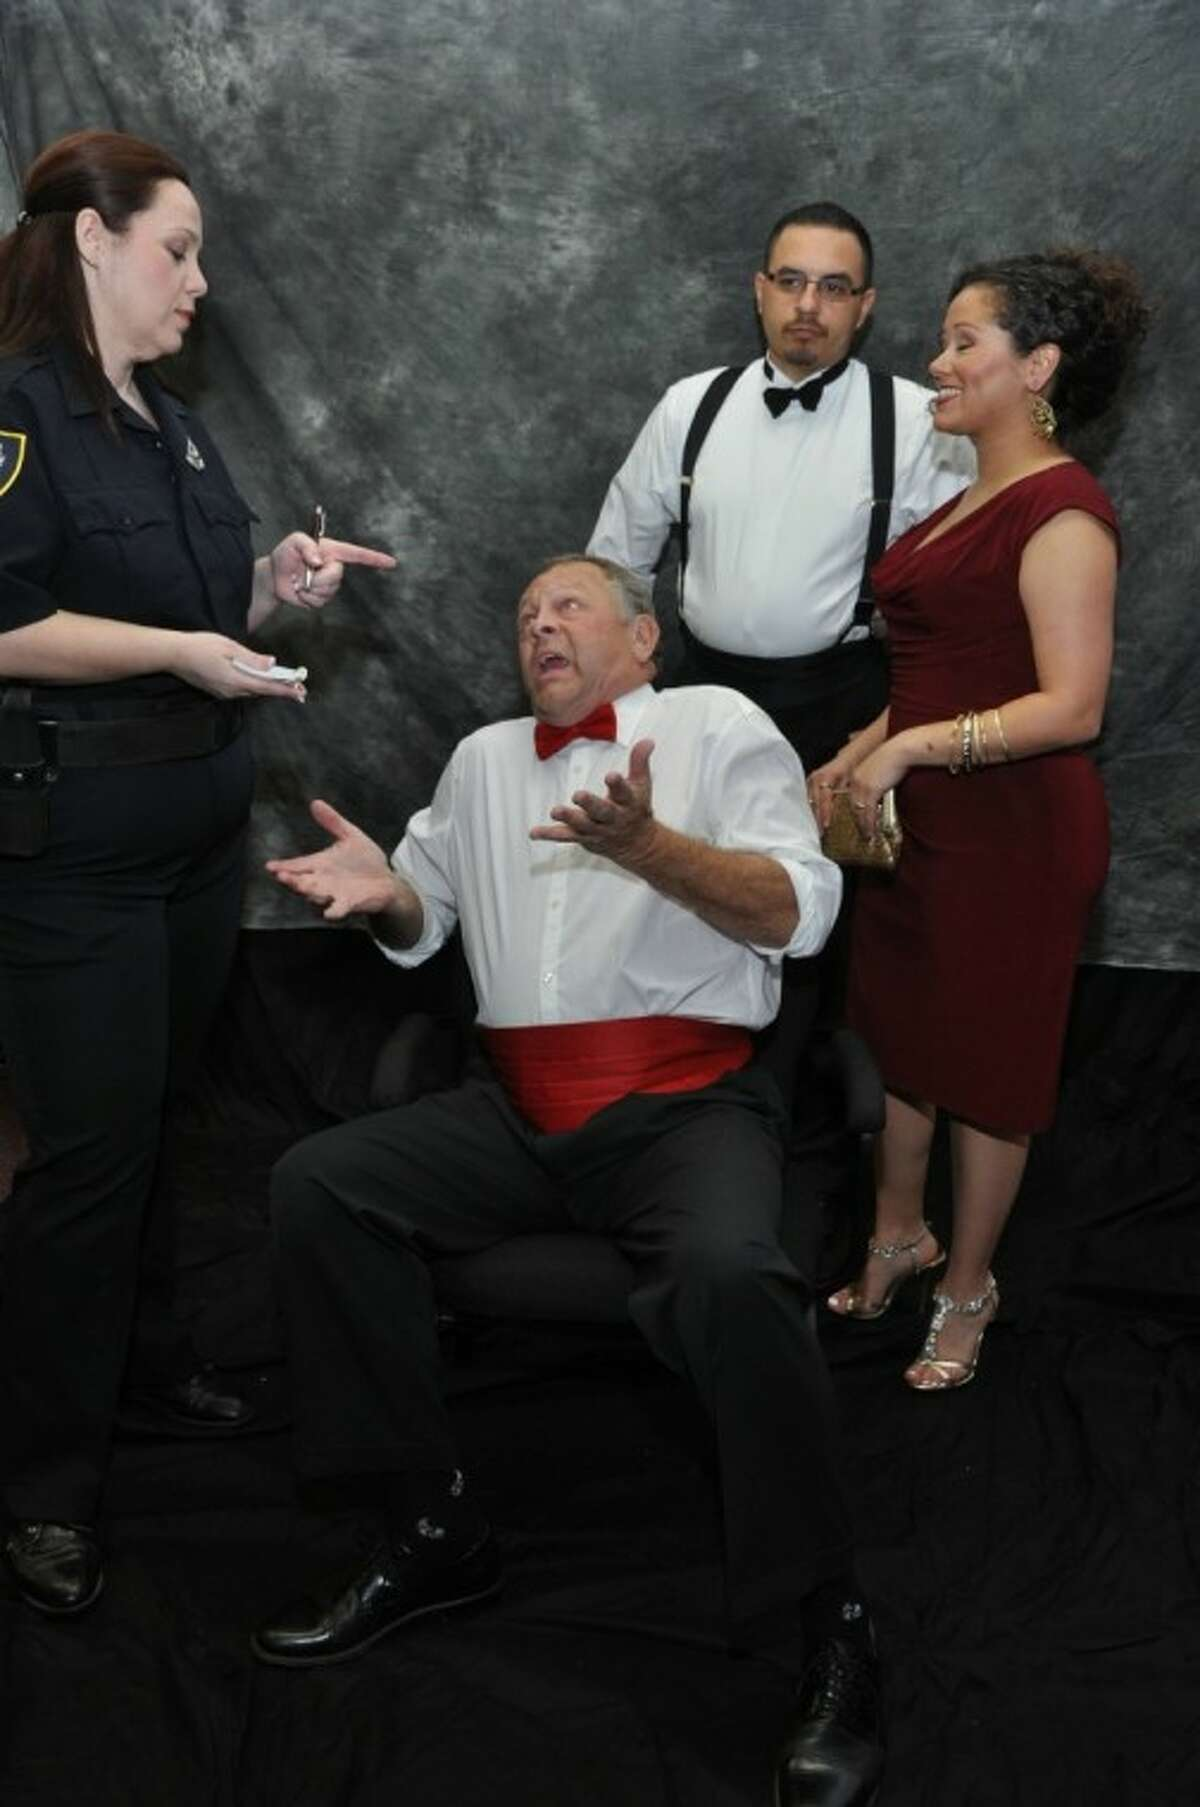 Officer Welch (Renea Runnels) questions guests Steve Quimby, Ralph Garza and Samantha Salazar in